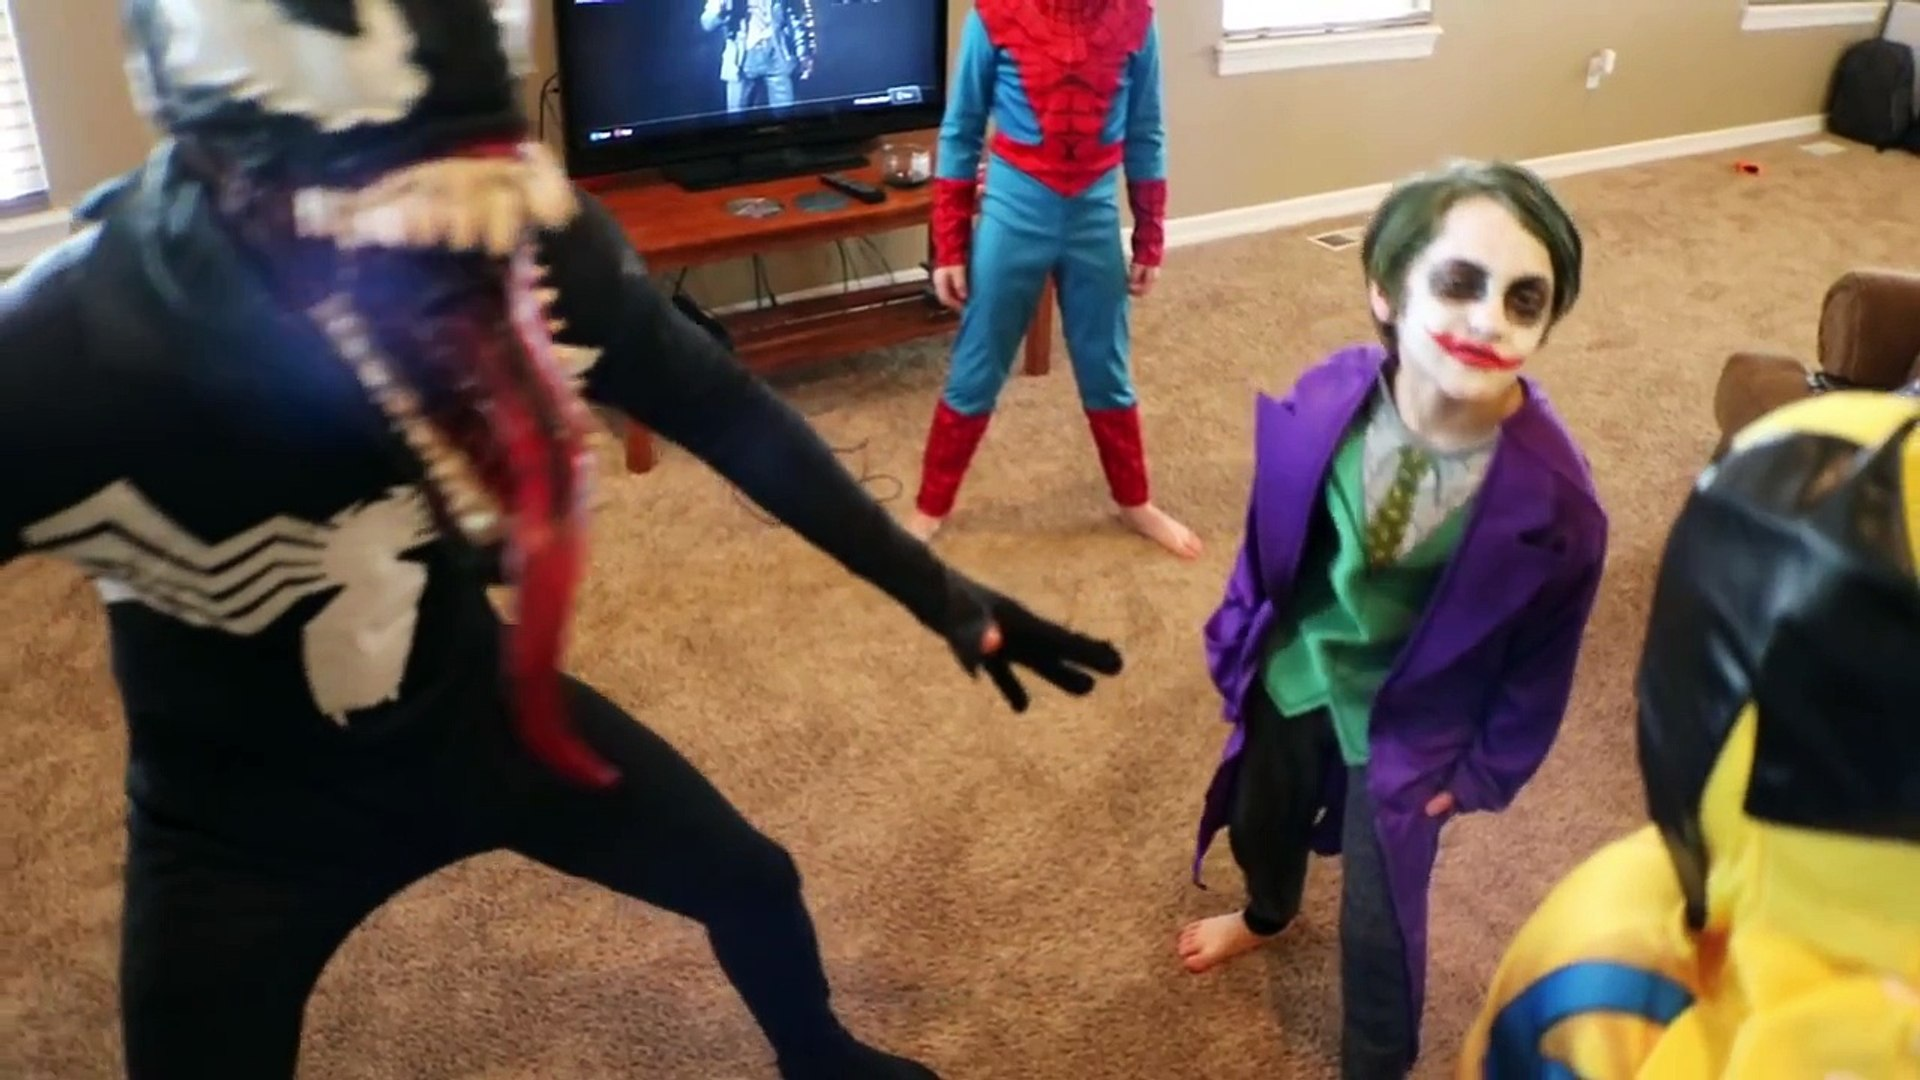 The Joker Venom Vs Spiderman Wolverine In Real Life Minecraft Sword Battle Superhero Movie видео Dailymotion